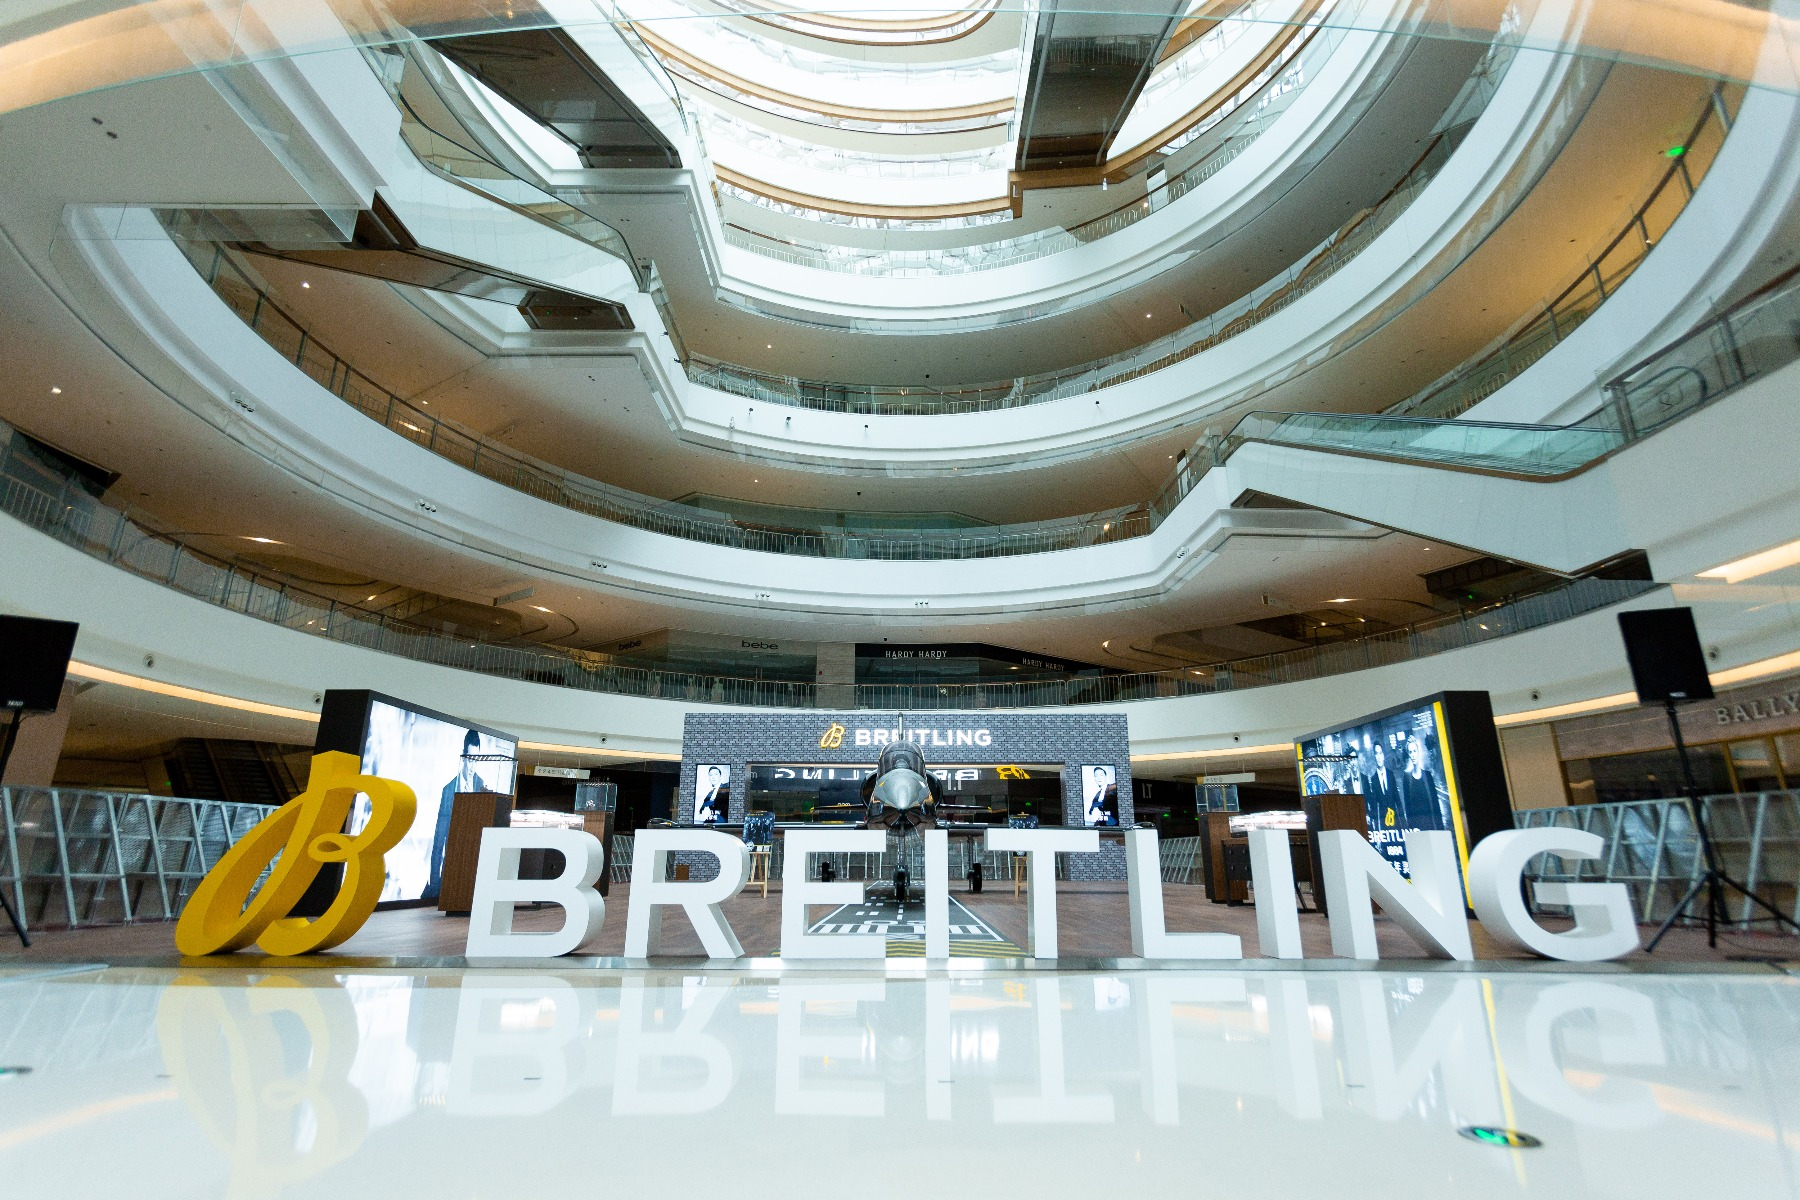 https://static.breitling.cn/media/111/__1.jpg